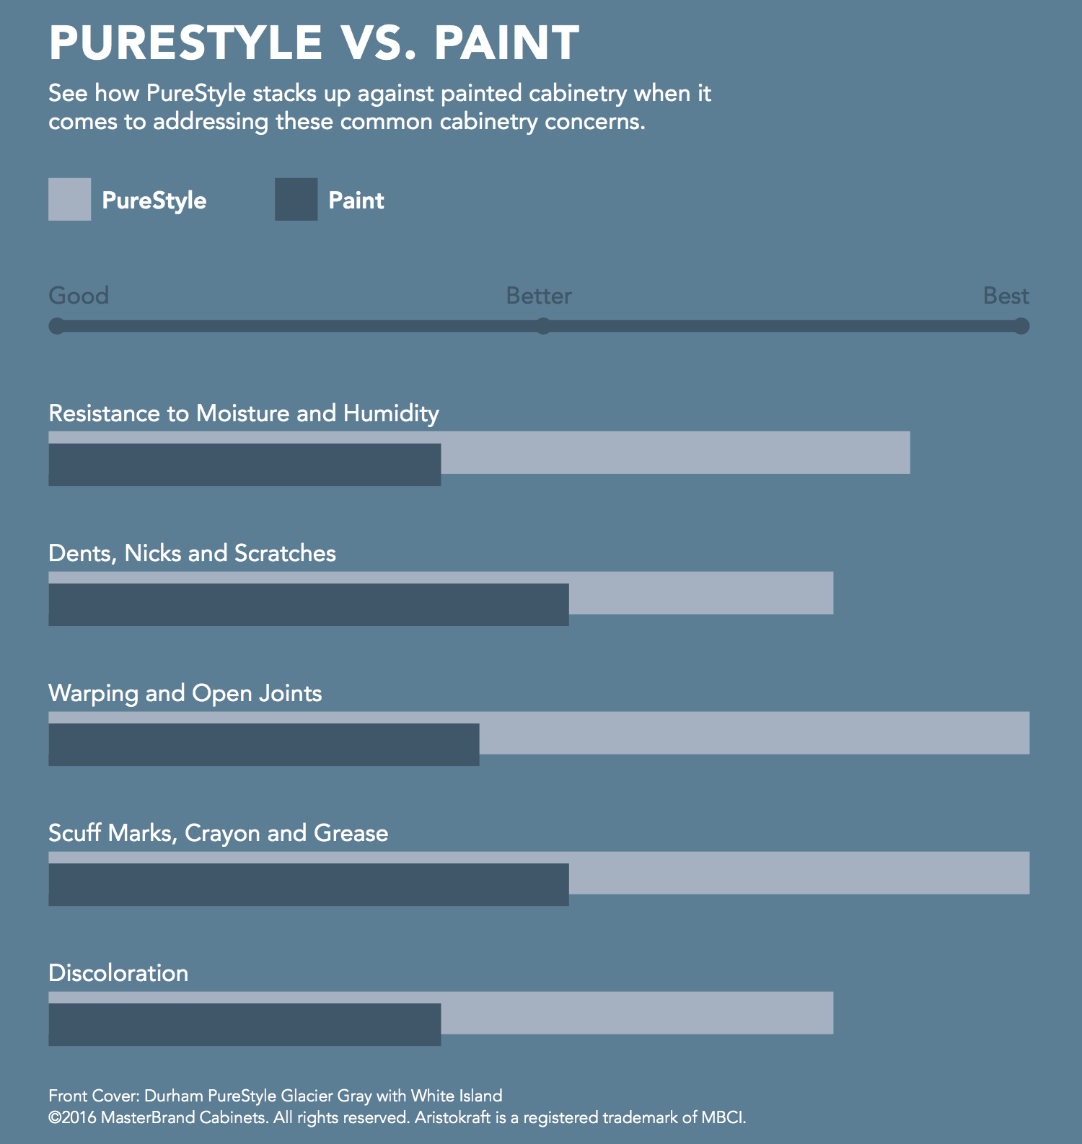 PureStyle Laminate versus Paint